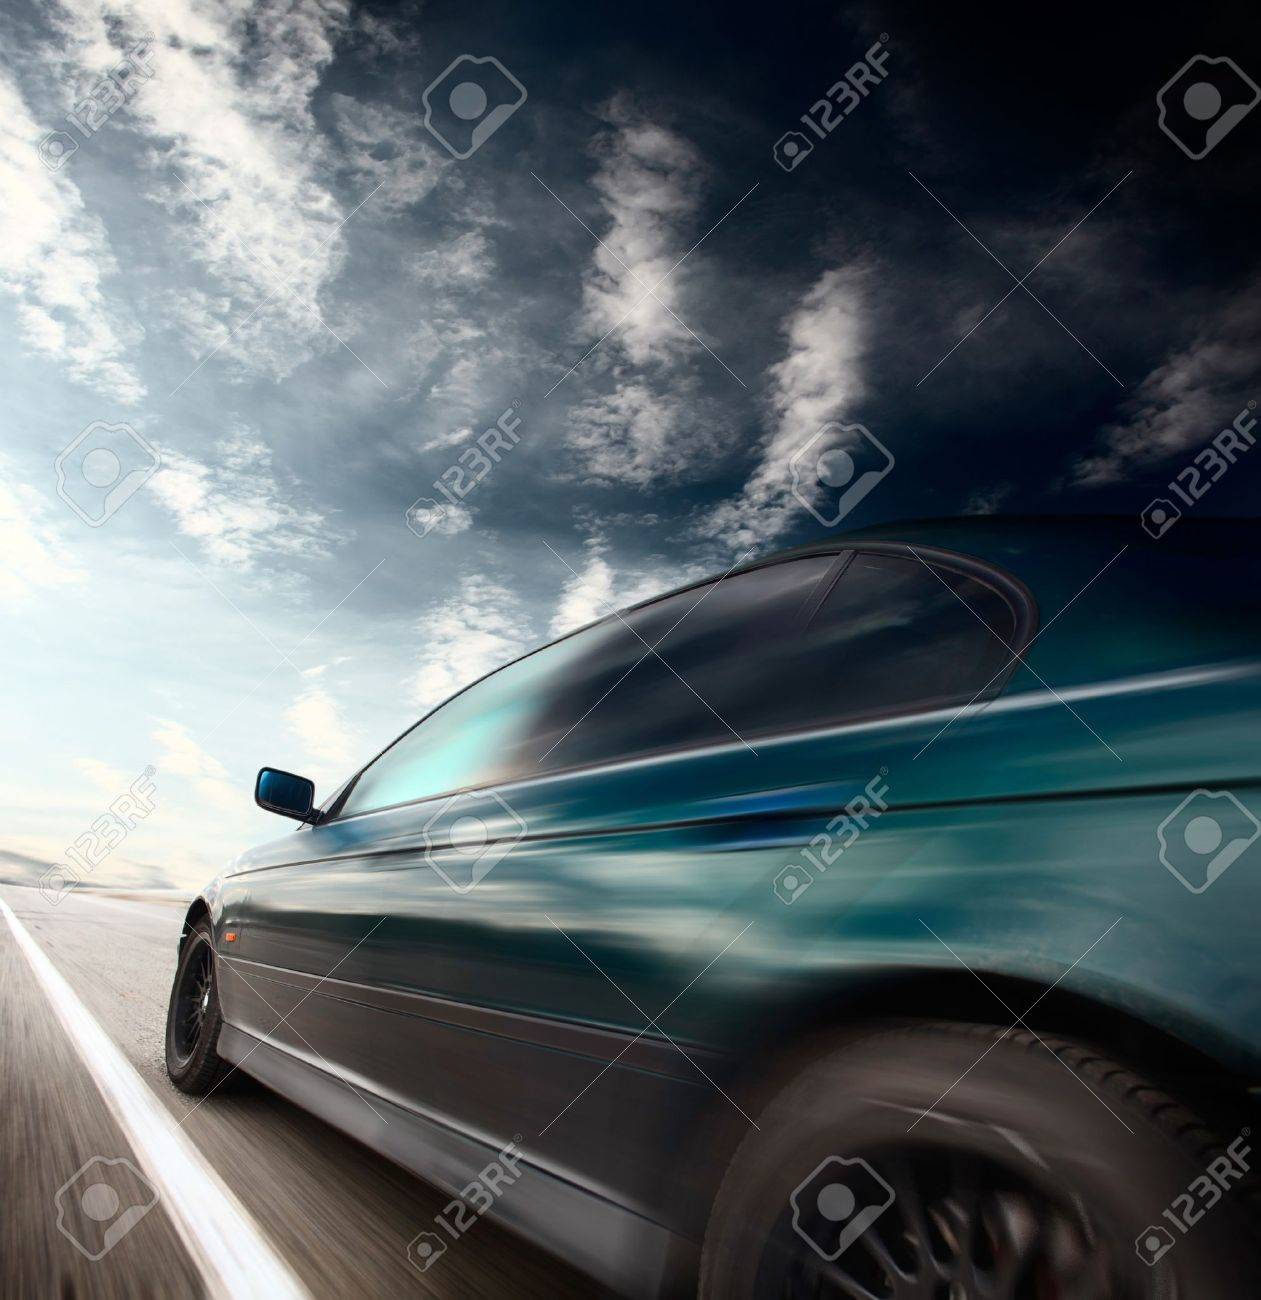 Motion blurred car on asphalt road and sky with clouds Stock Photo - 7791417